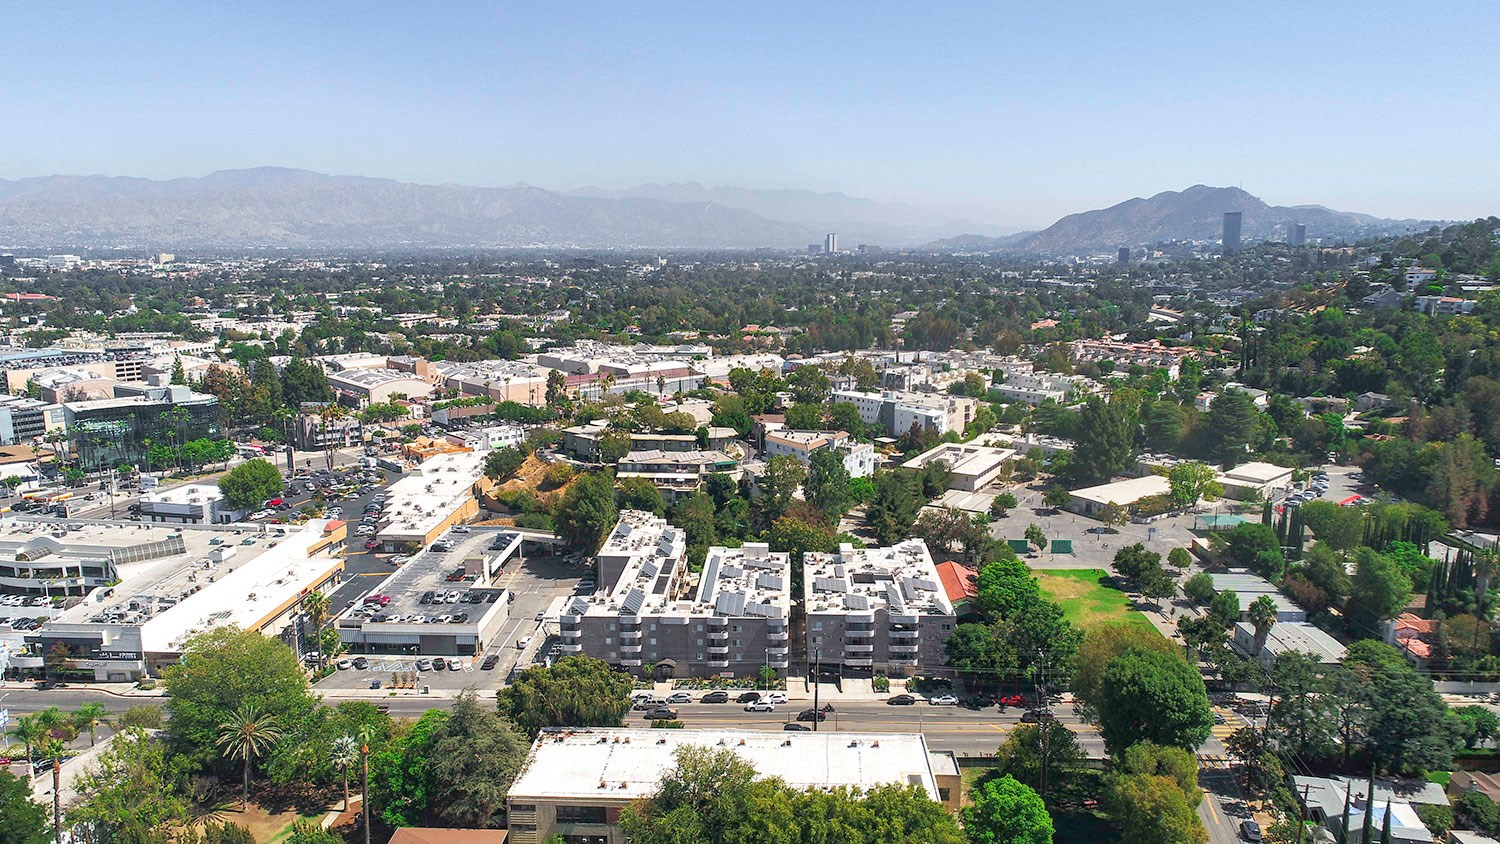 Drone view of community short distance to Ventura Boulevard.